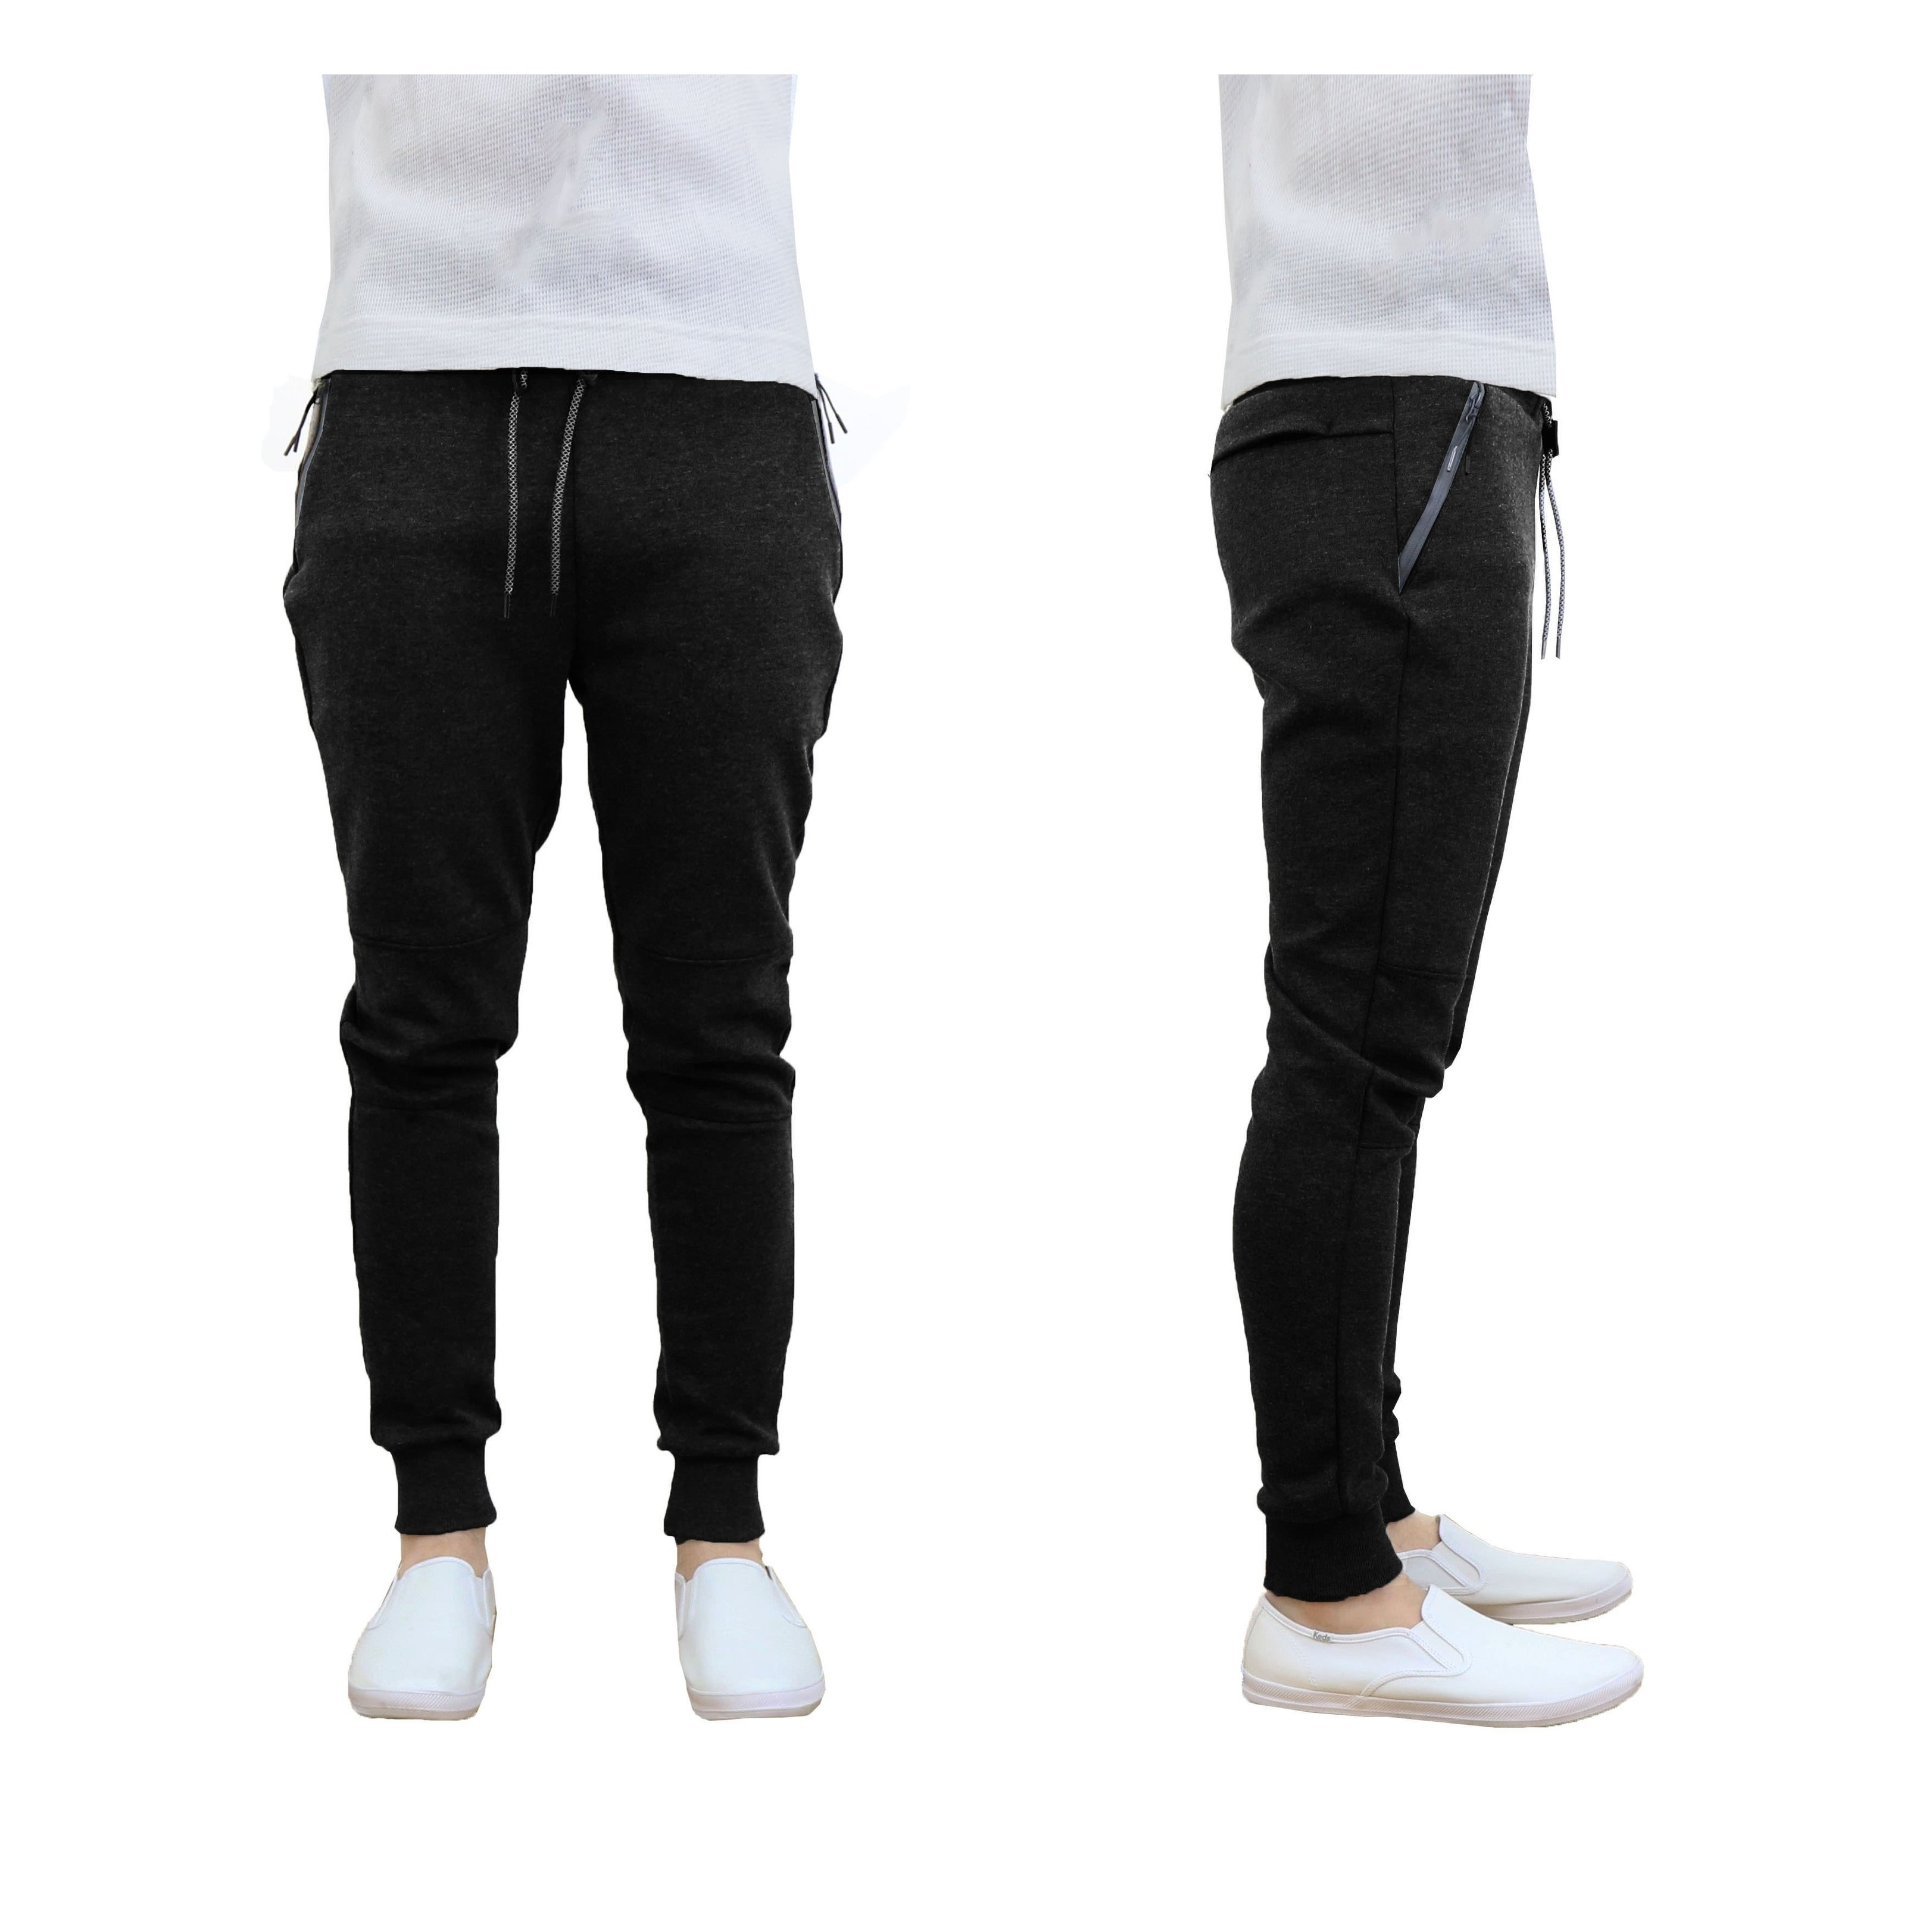 the latest f166a 83ebb Shop Galaxy By Harvic Men s Tech Fleece Jogger Sweatpants Lounge Active  Slim Fit - On Sale - Free Shipping On Orders Over  45 - Overstock - 19420045